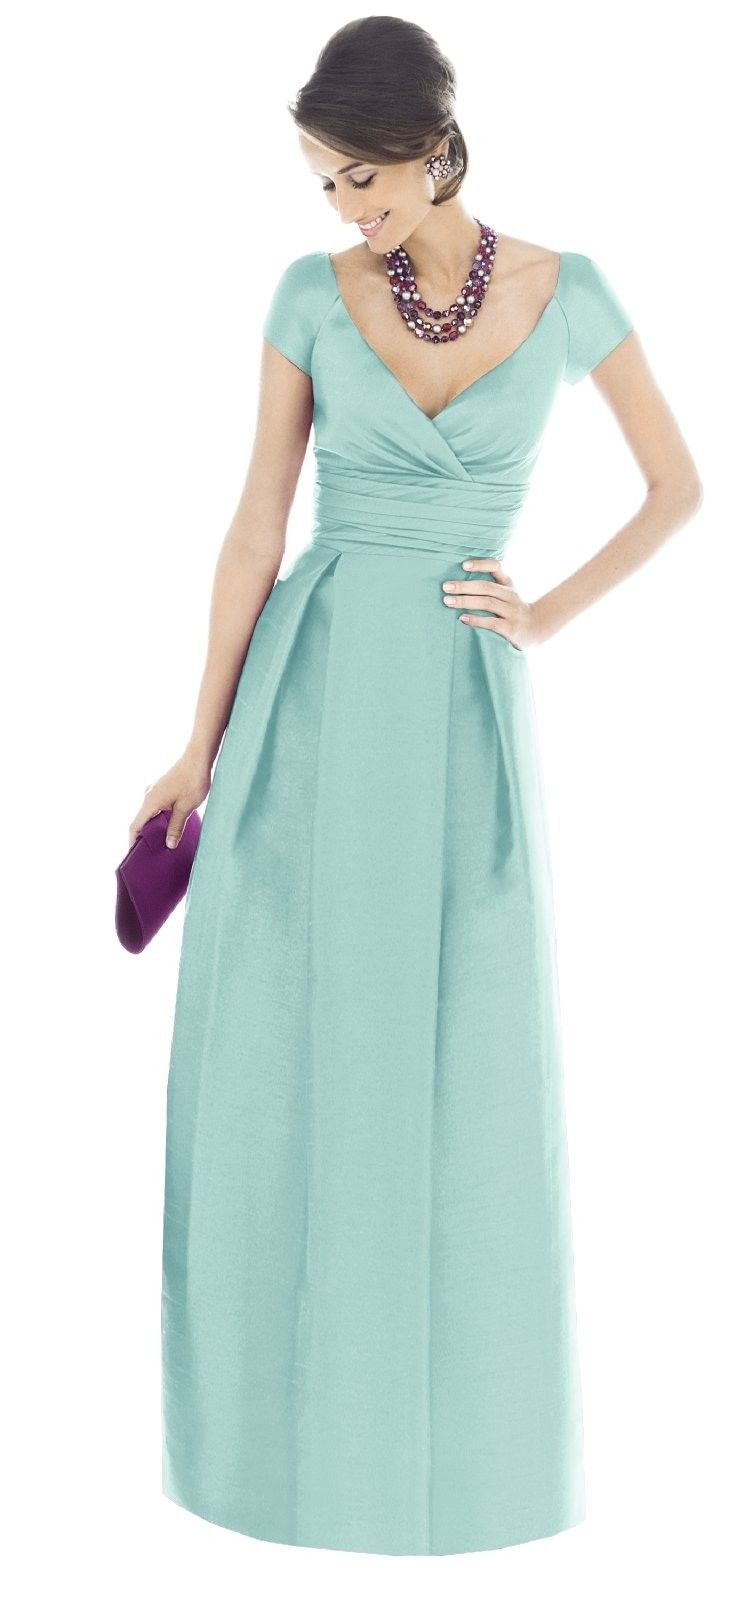 Alfred sung bridesmaid dress beautiful color women short alfred sung bridesmaid dress beautiful color ombrellifo Choice Image